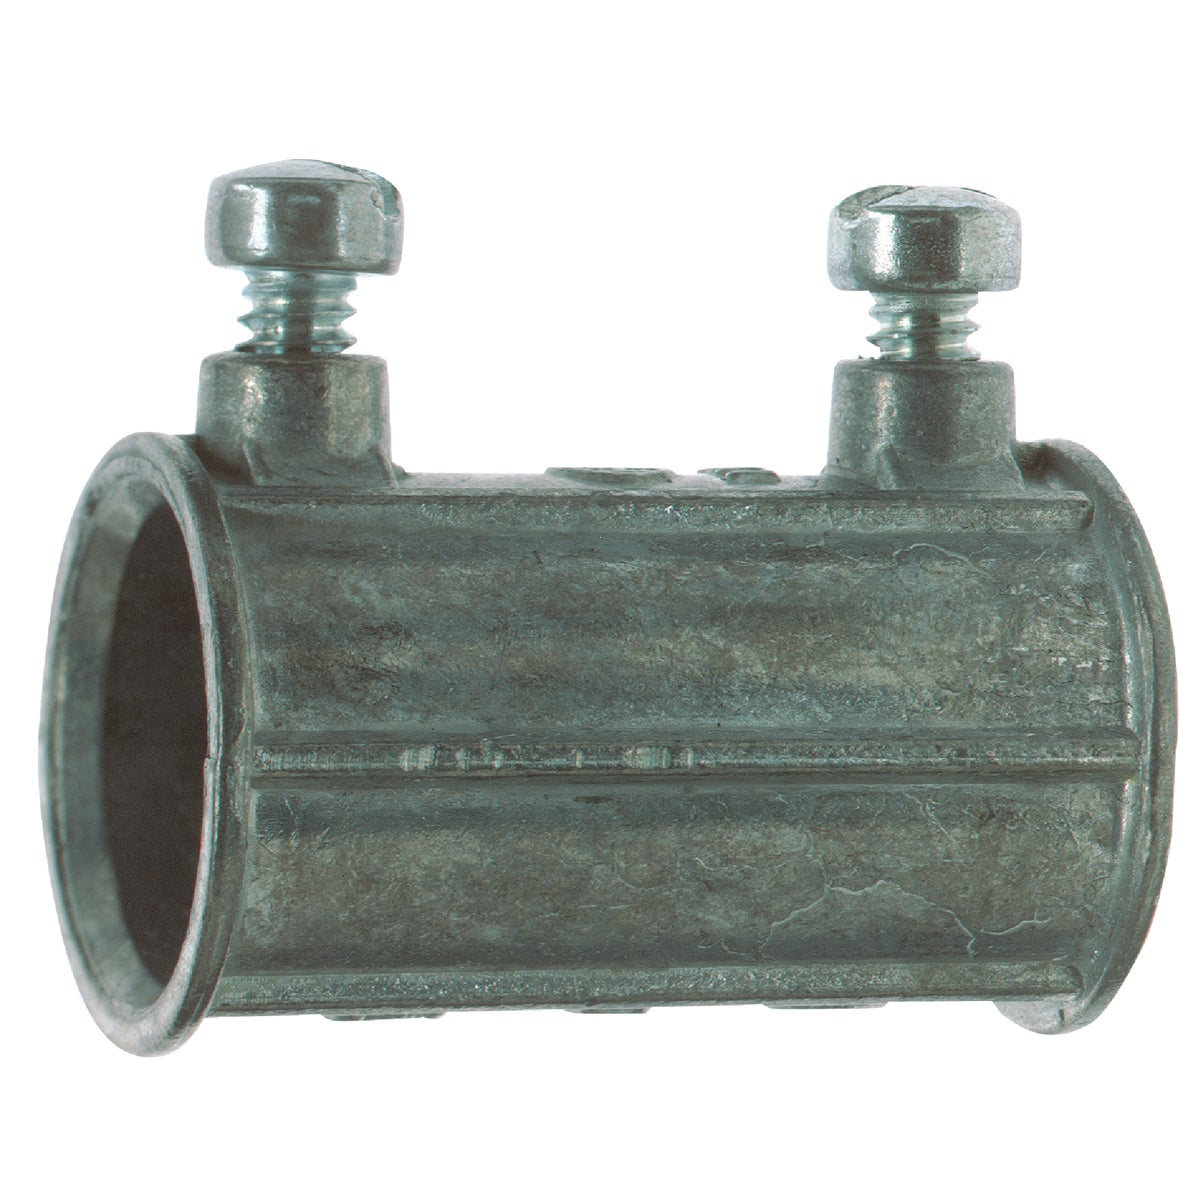 "25PC 3/4"" EMT COUPLING"